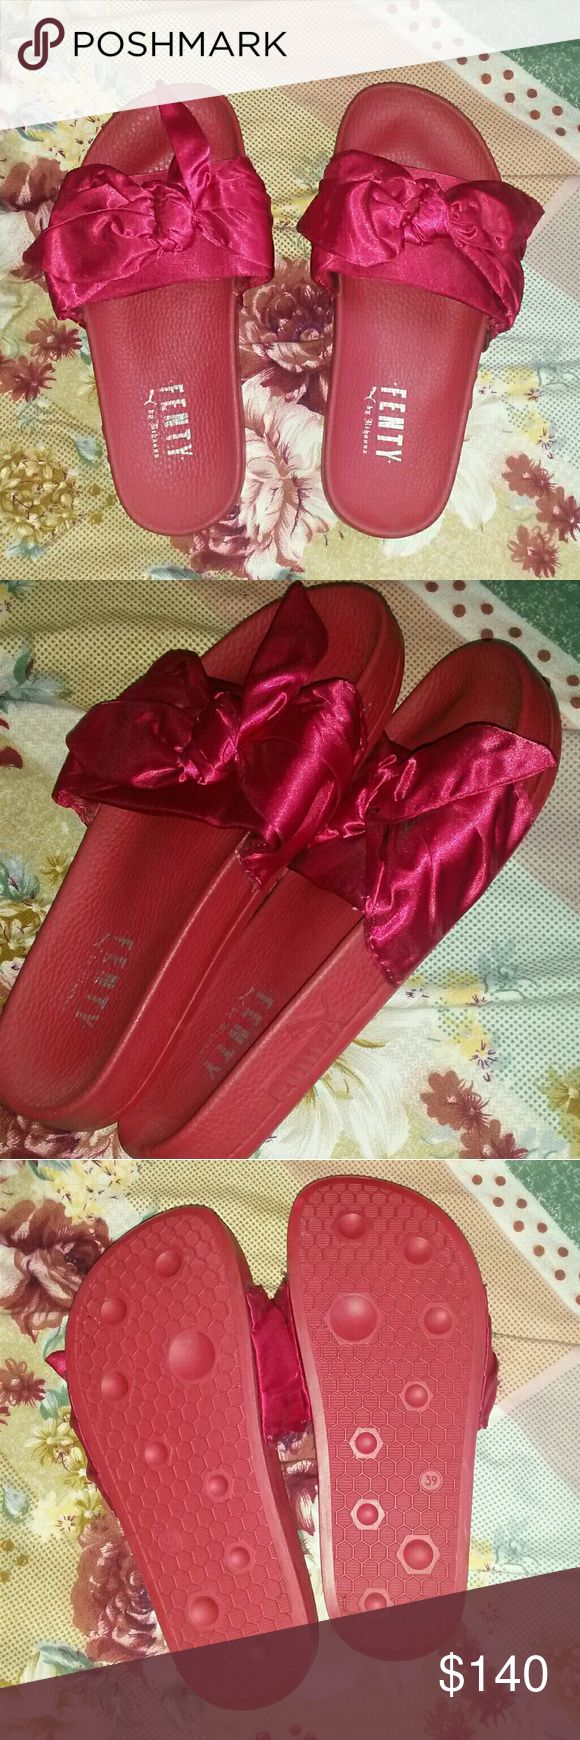 Rihanna Fenty Puma Slides Brand new satin slides in red, size 39 Puma Shoes Slippers